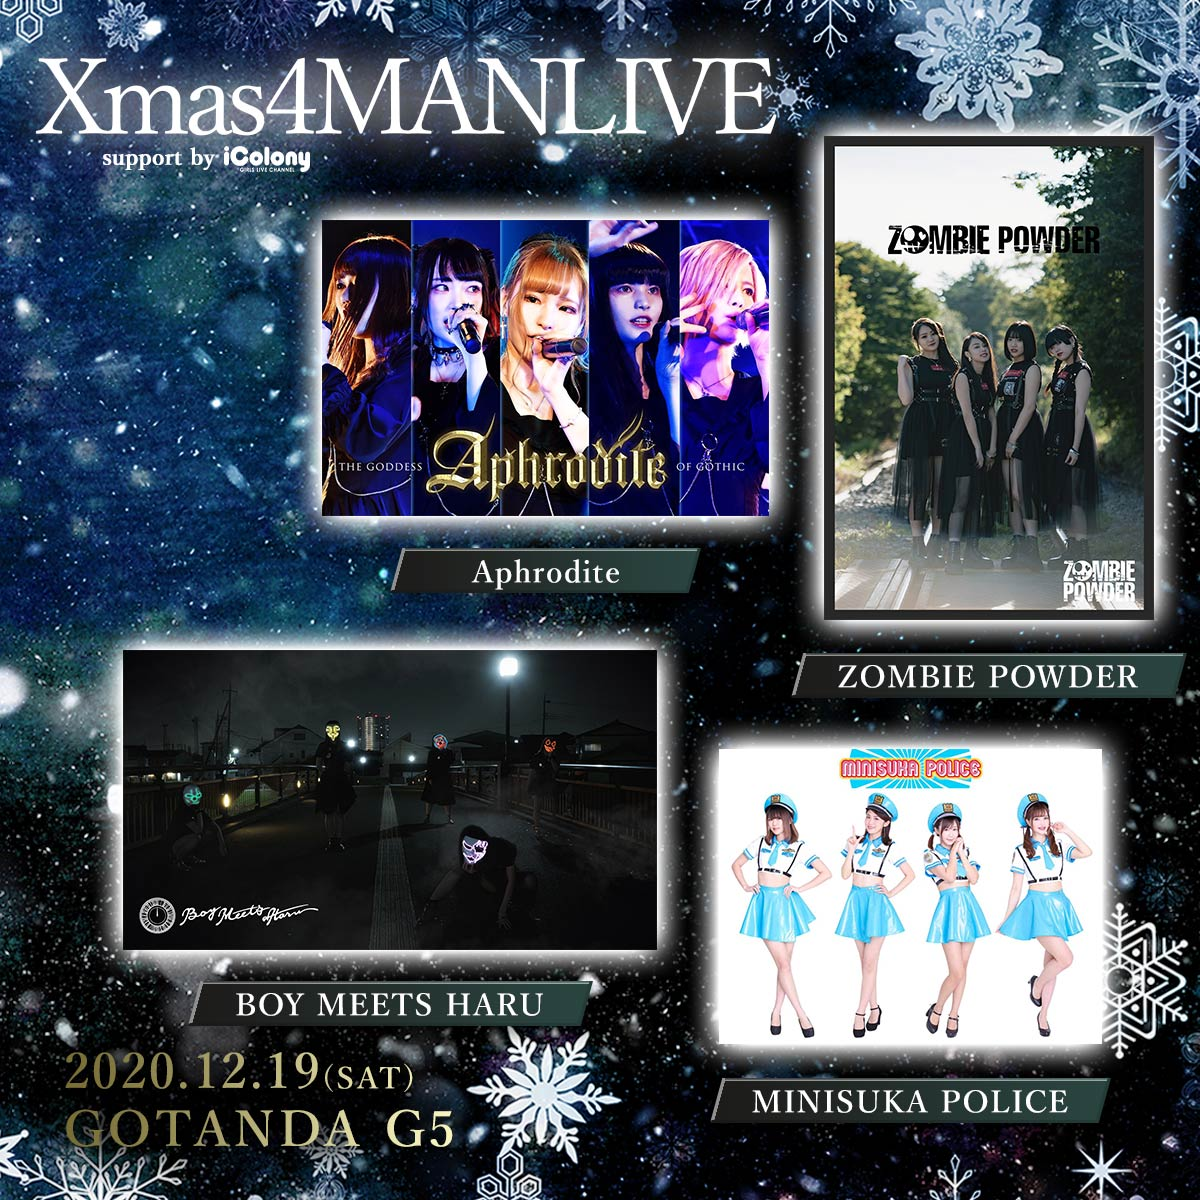 XMAS4MANLIVE supported by iColony